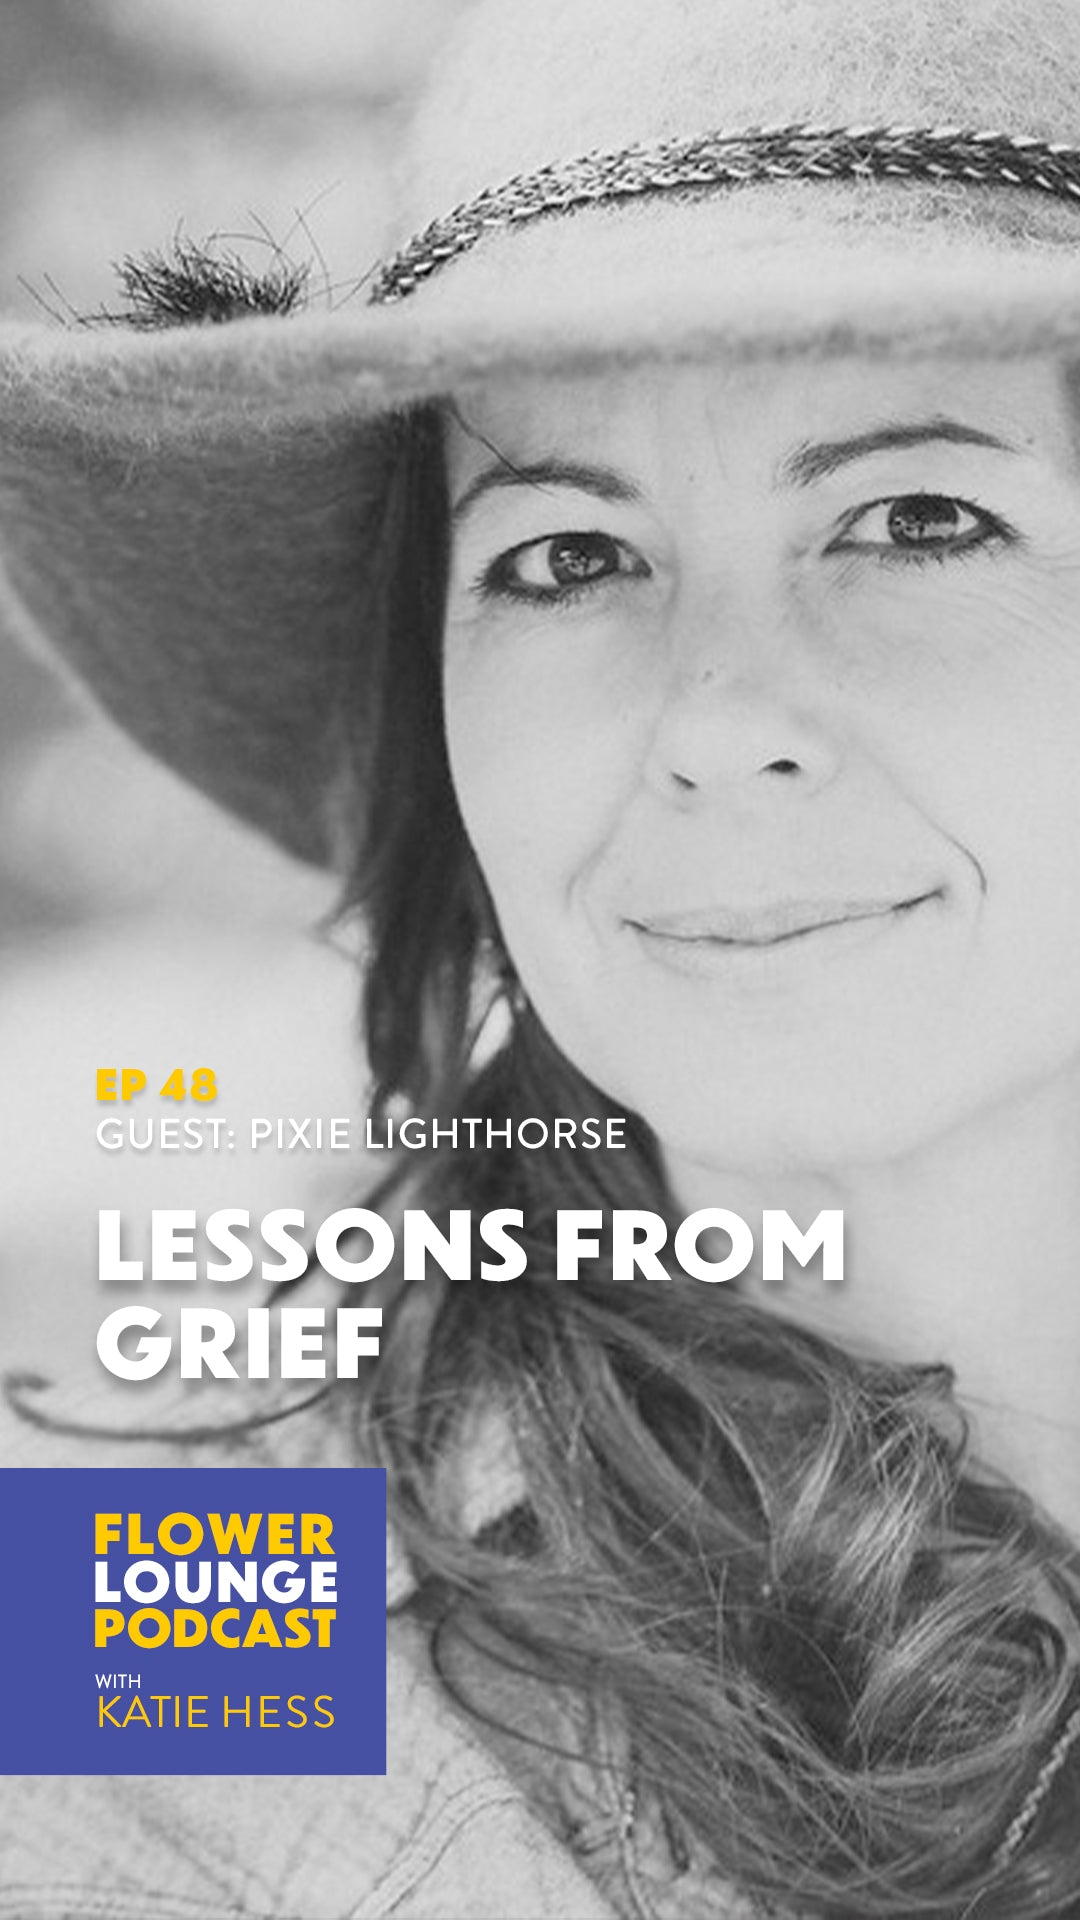 Lessons from Grief: Taking Inventory + Nourishing Your Internal Self with Pixie Lighthorse on the Flowerlounge Podcast with Katie Hess